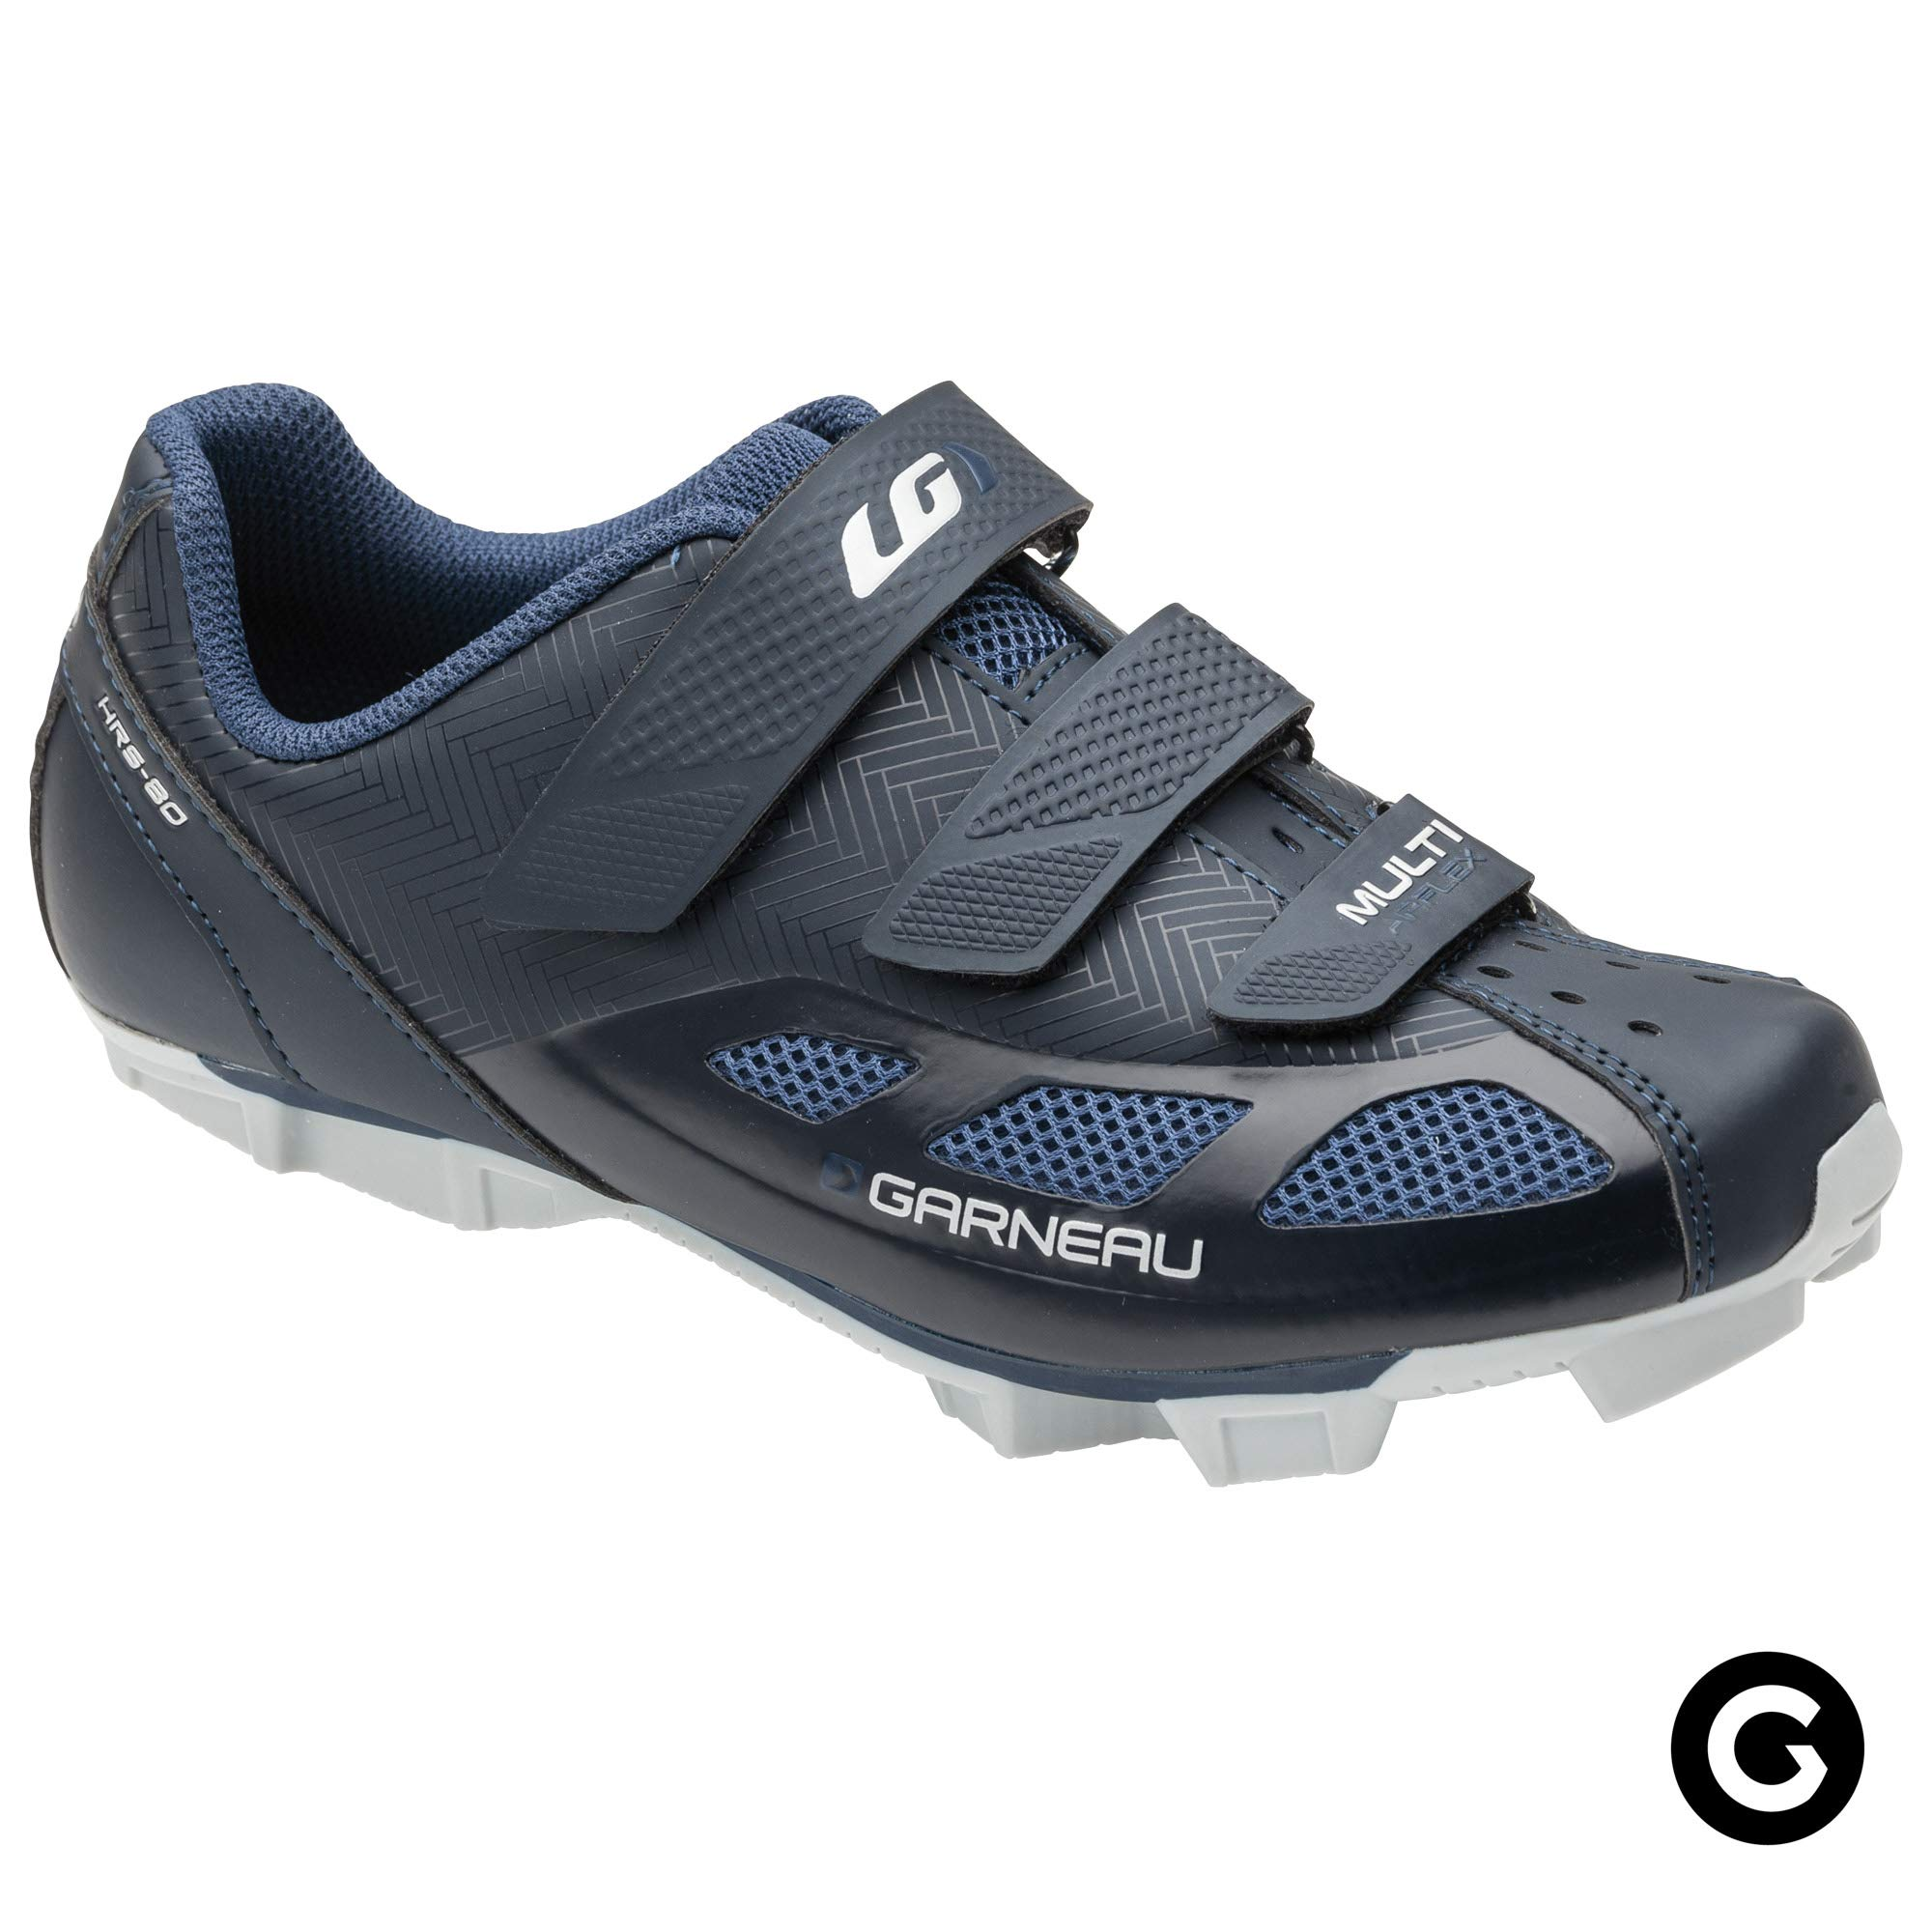 Louis Garneau - Women's Multi Air Flex Bike Shoes for Indoor Cycling, Commuting and MTB, SPD Cleats Compatible with MTB Pedals, Mat Black Navy, US (6.5), EU (37)